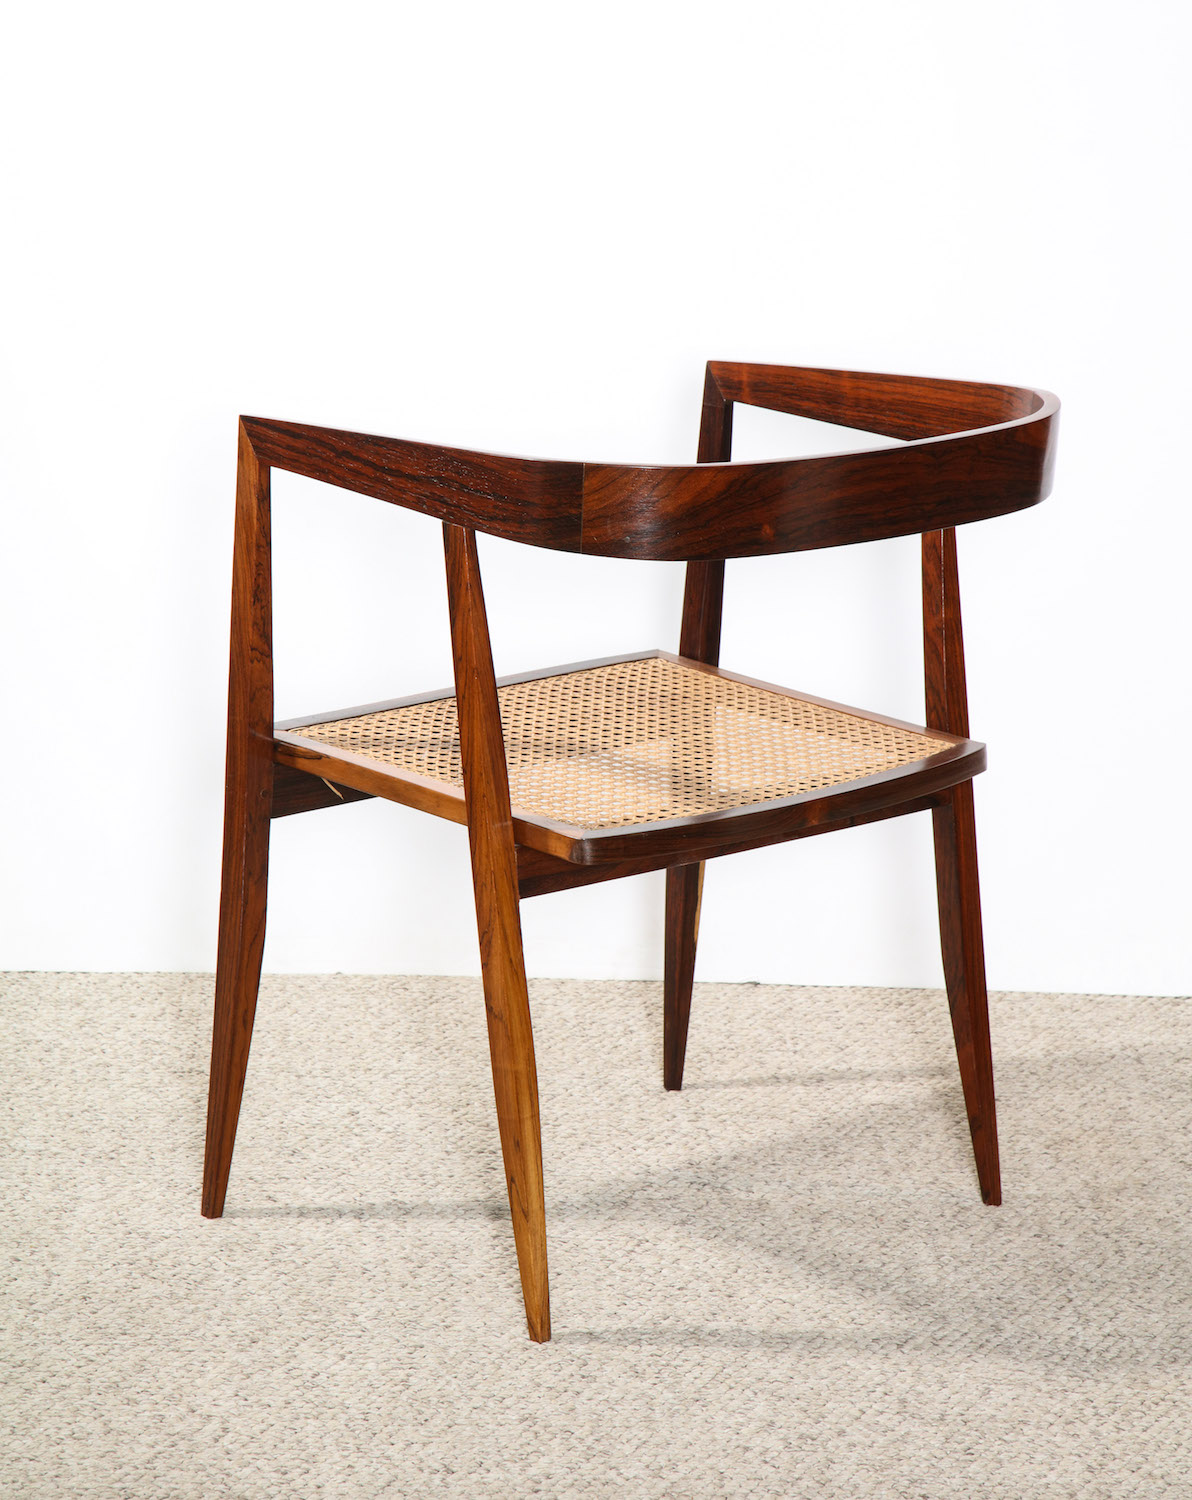 Tenriero Dining Chair 7.jpg